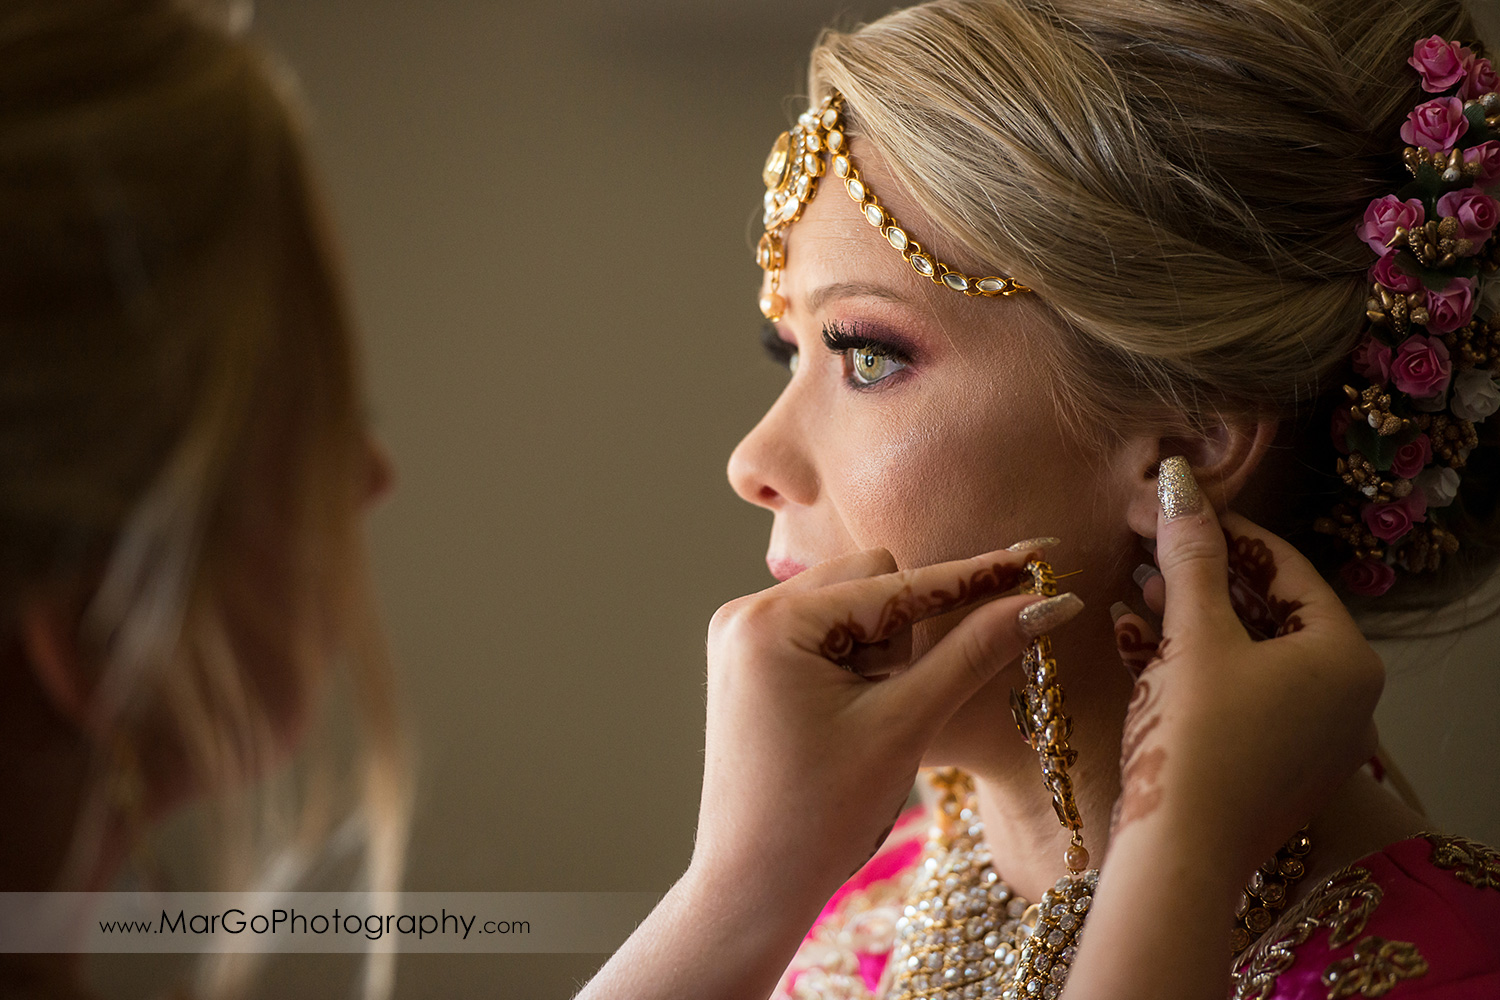 Indian bride getting ready - putting on golden earrings